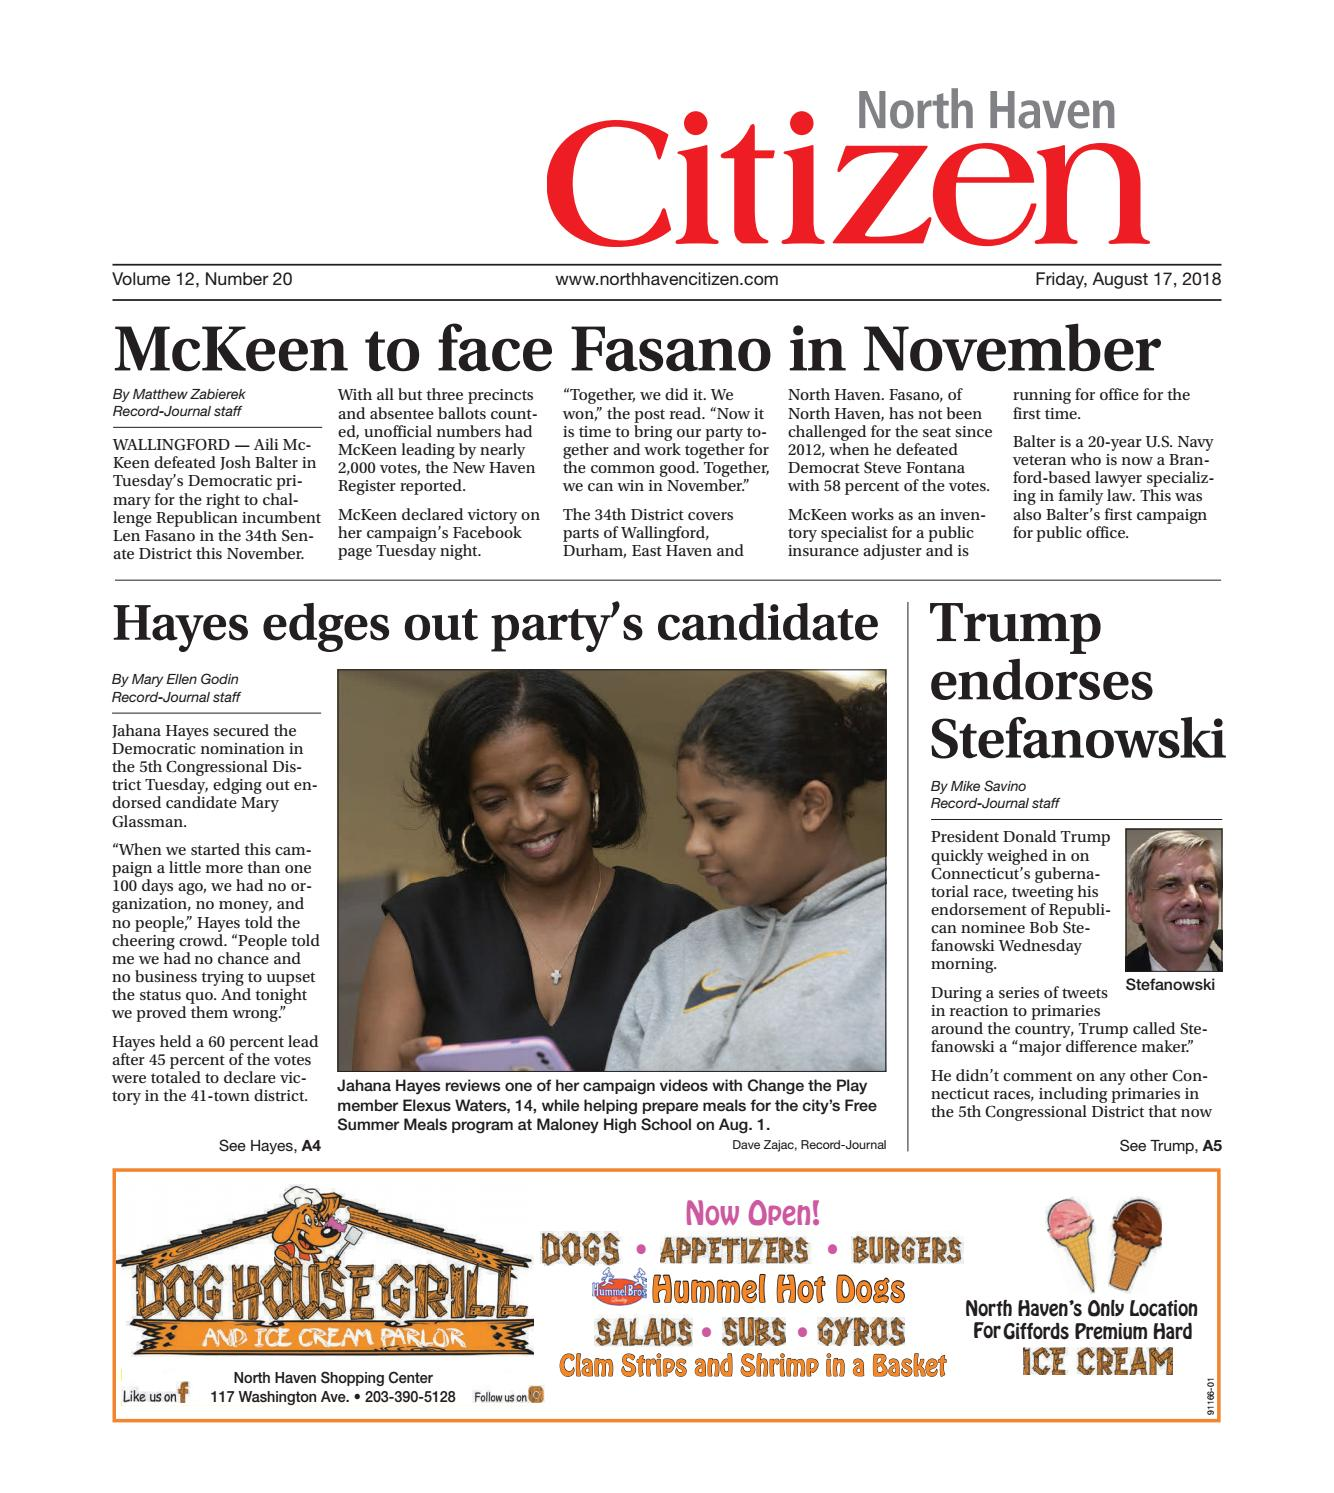 noth haven citizen, aug 17, 2018 by north haven issuunoth haven citizen, aug